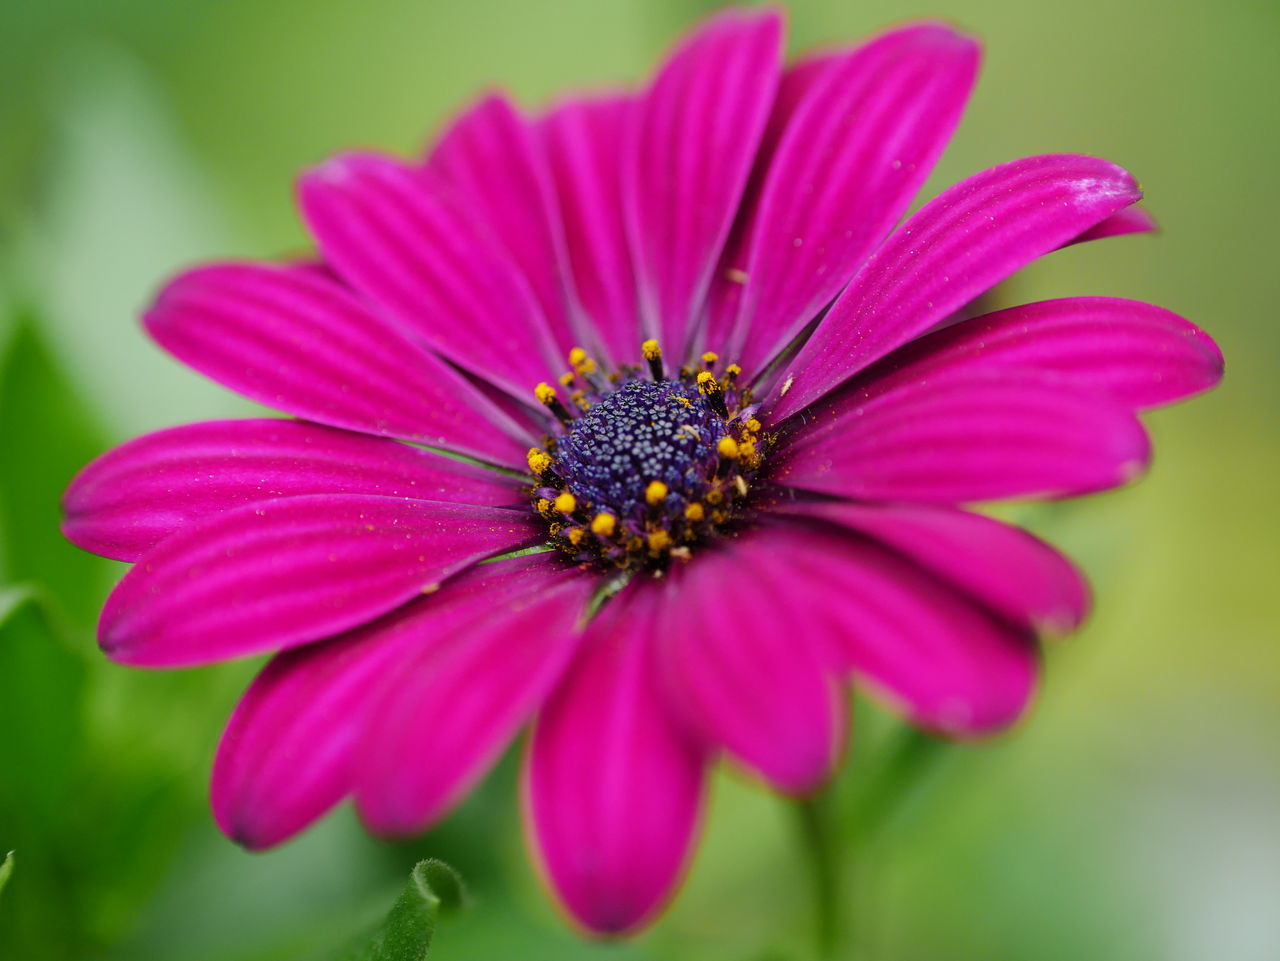 Close-Up Of Cosmos Flower Blooming Outdoors